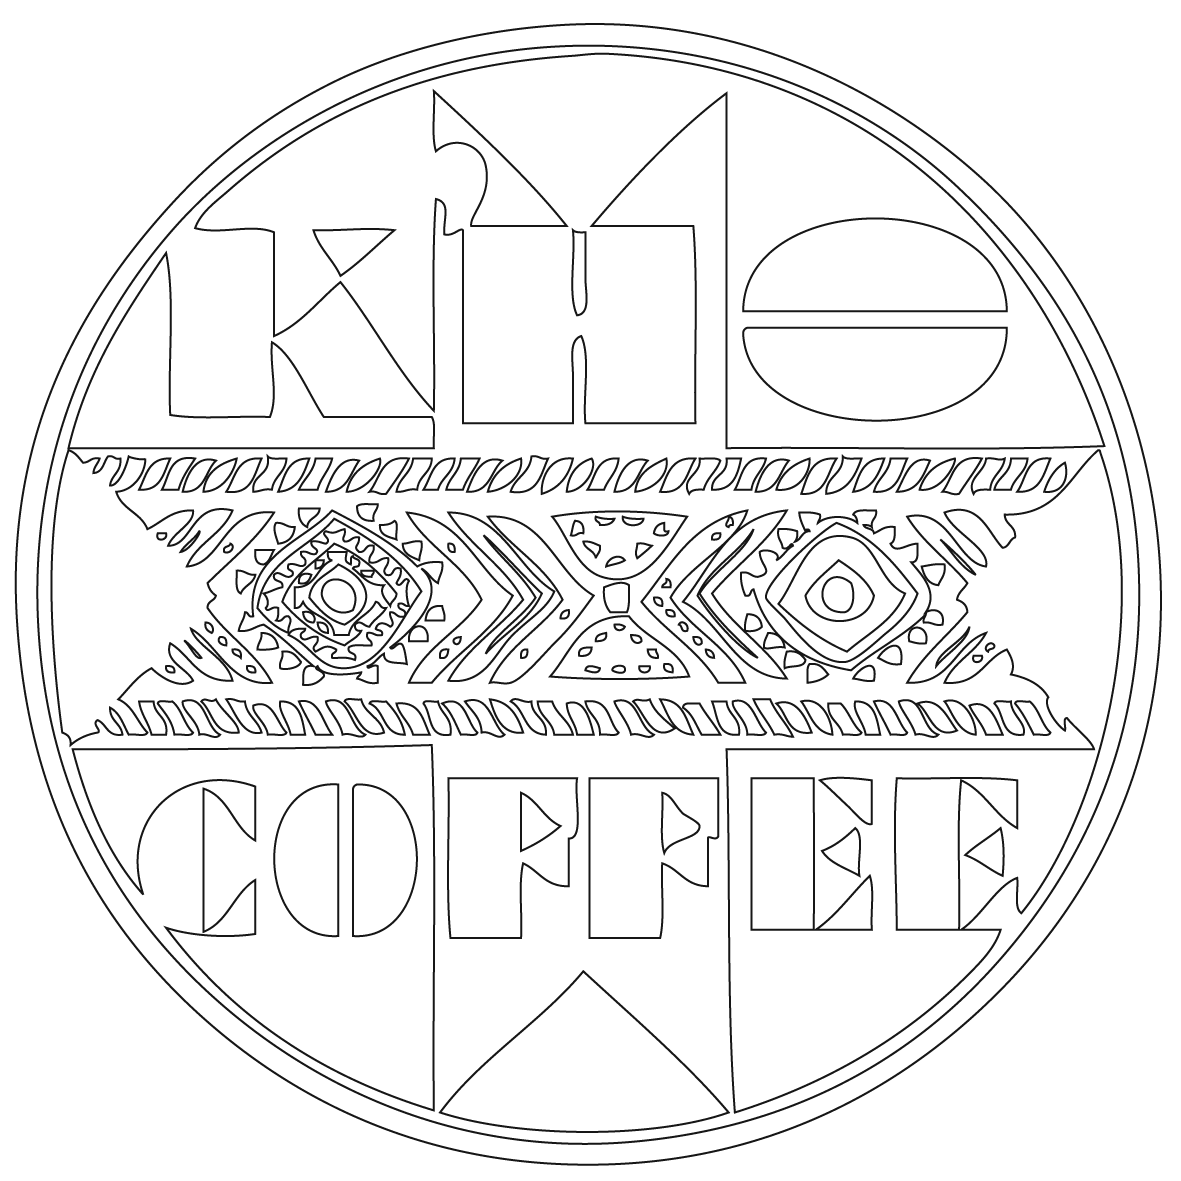 Kho Coffee The Montagnards A Group Of Ethnic Minority Kho Tribes